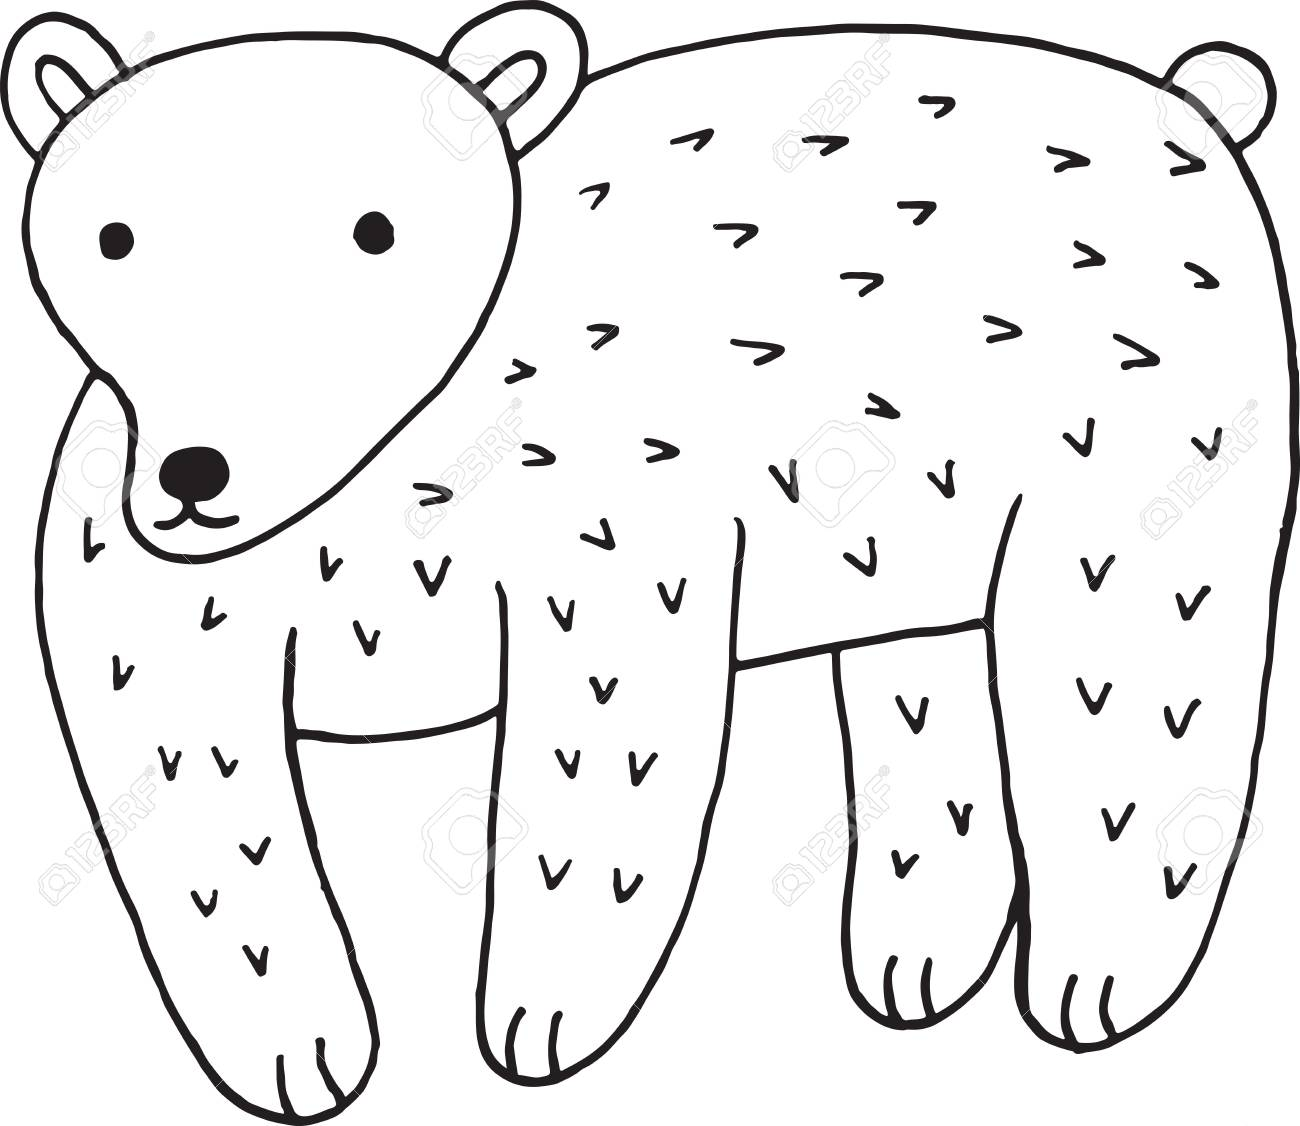 Free Childrens Coloring Pages Animals, Download Free Clip Art ... | 1126x1300